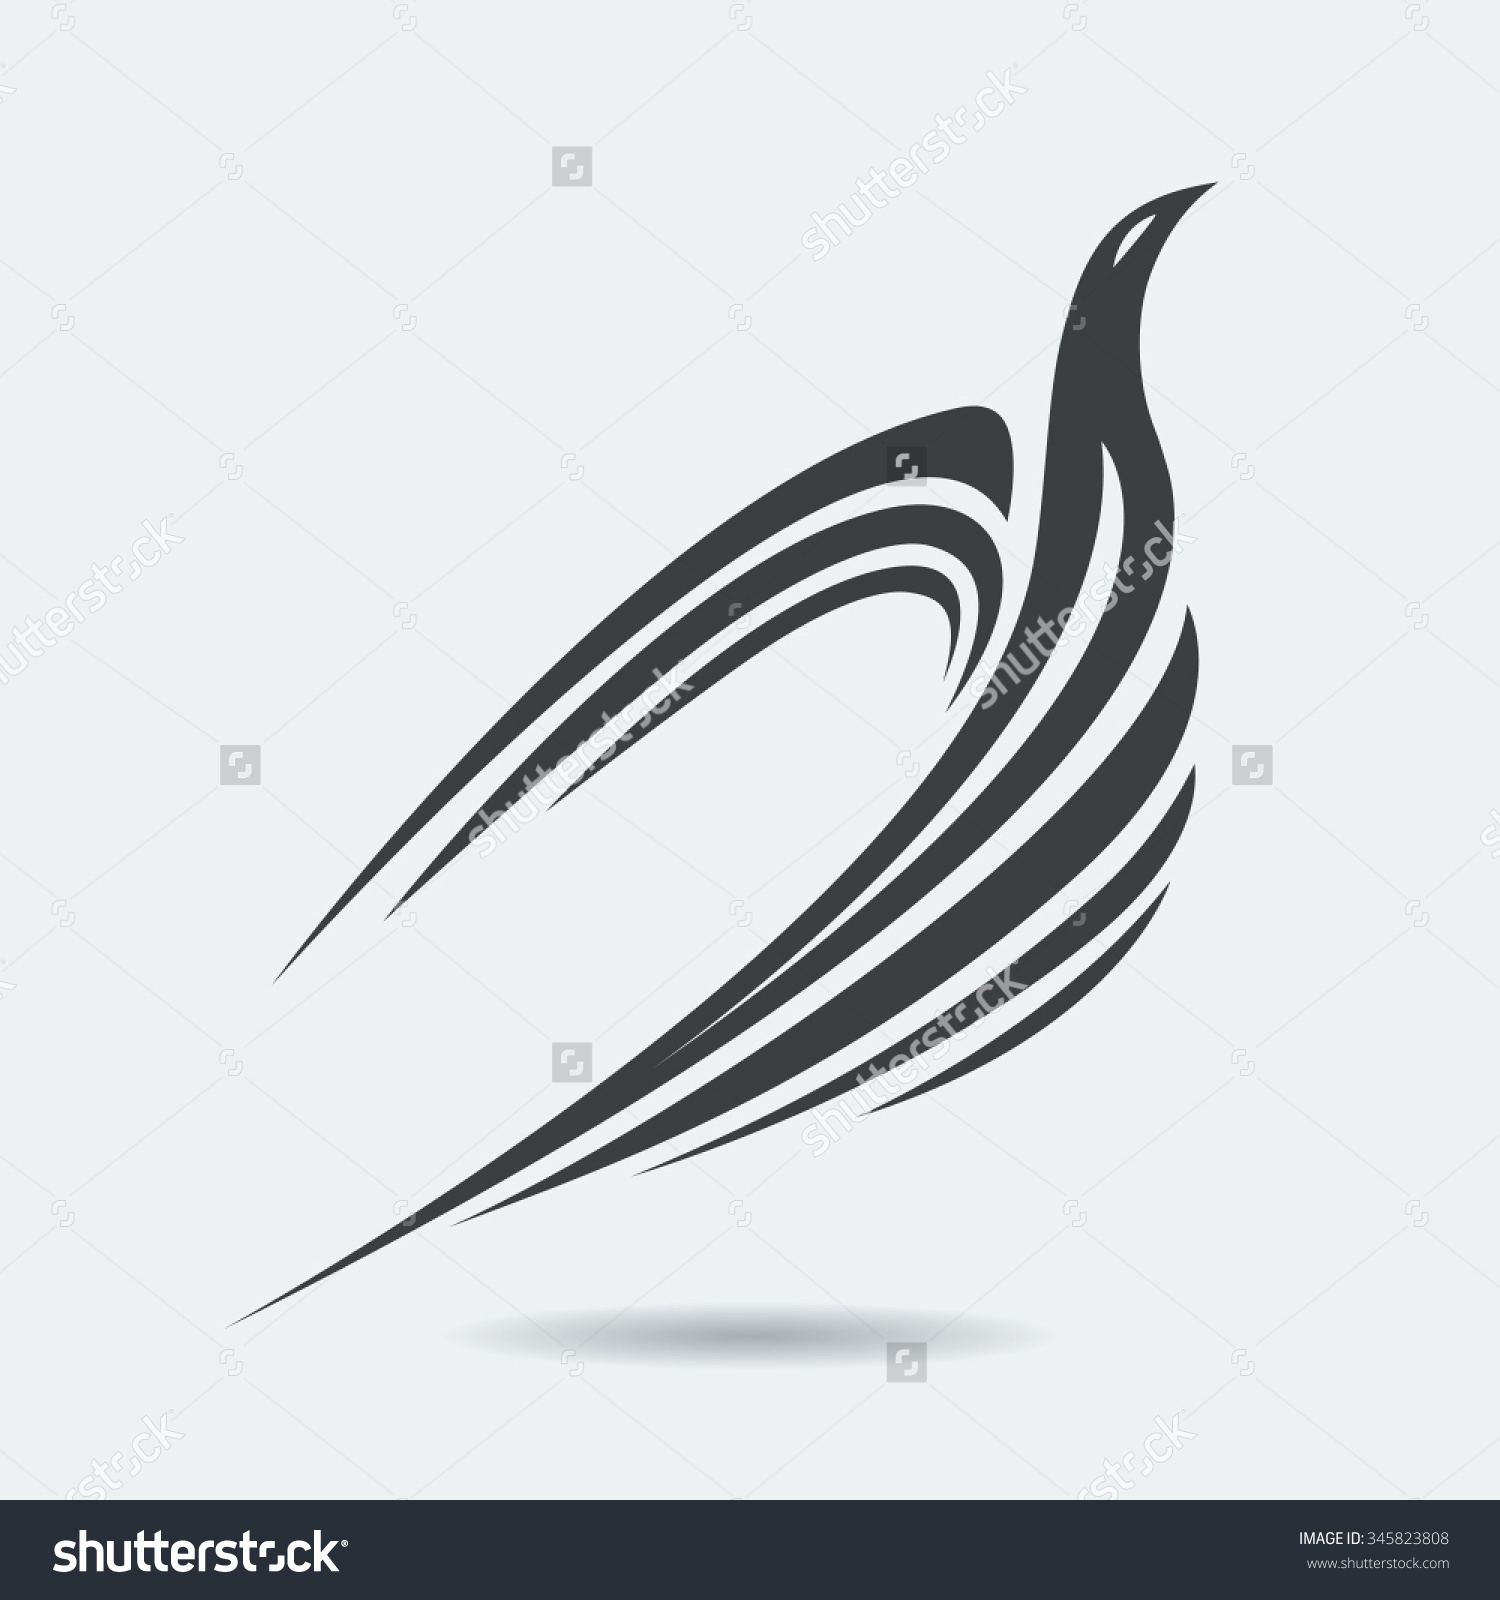 Stylized Rising Flying Bird Silhouette Grey Stock Vector 345823808.